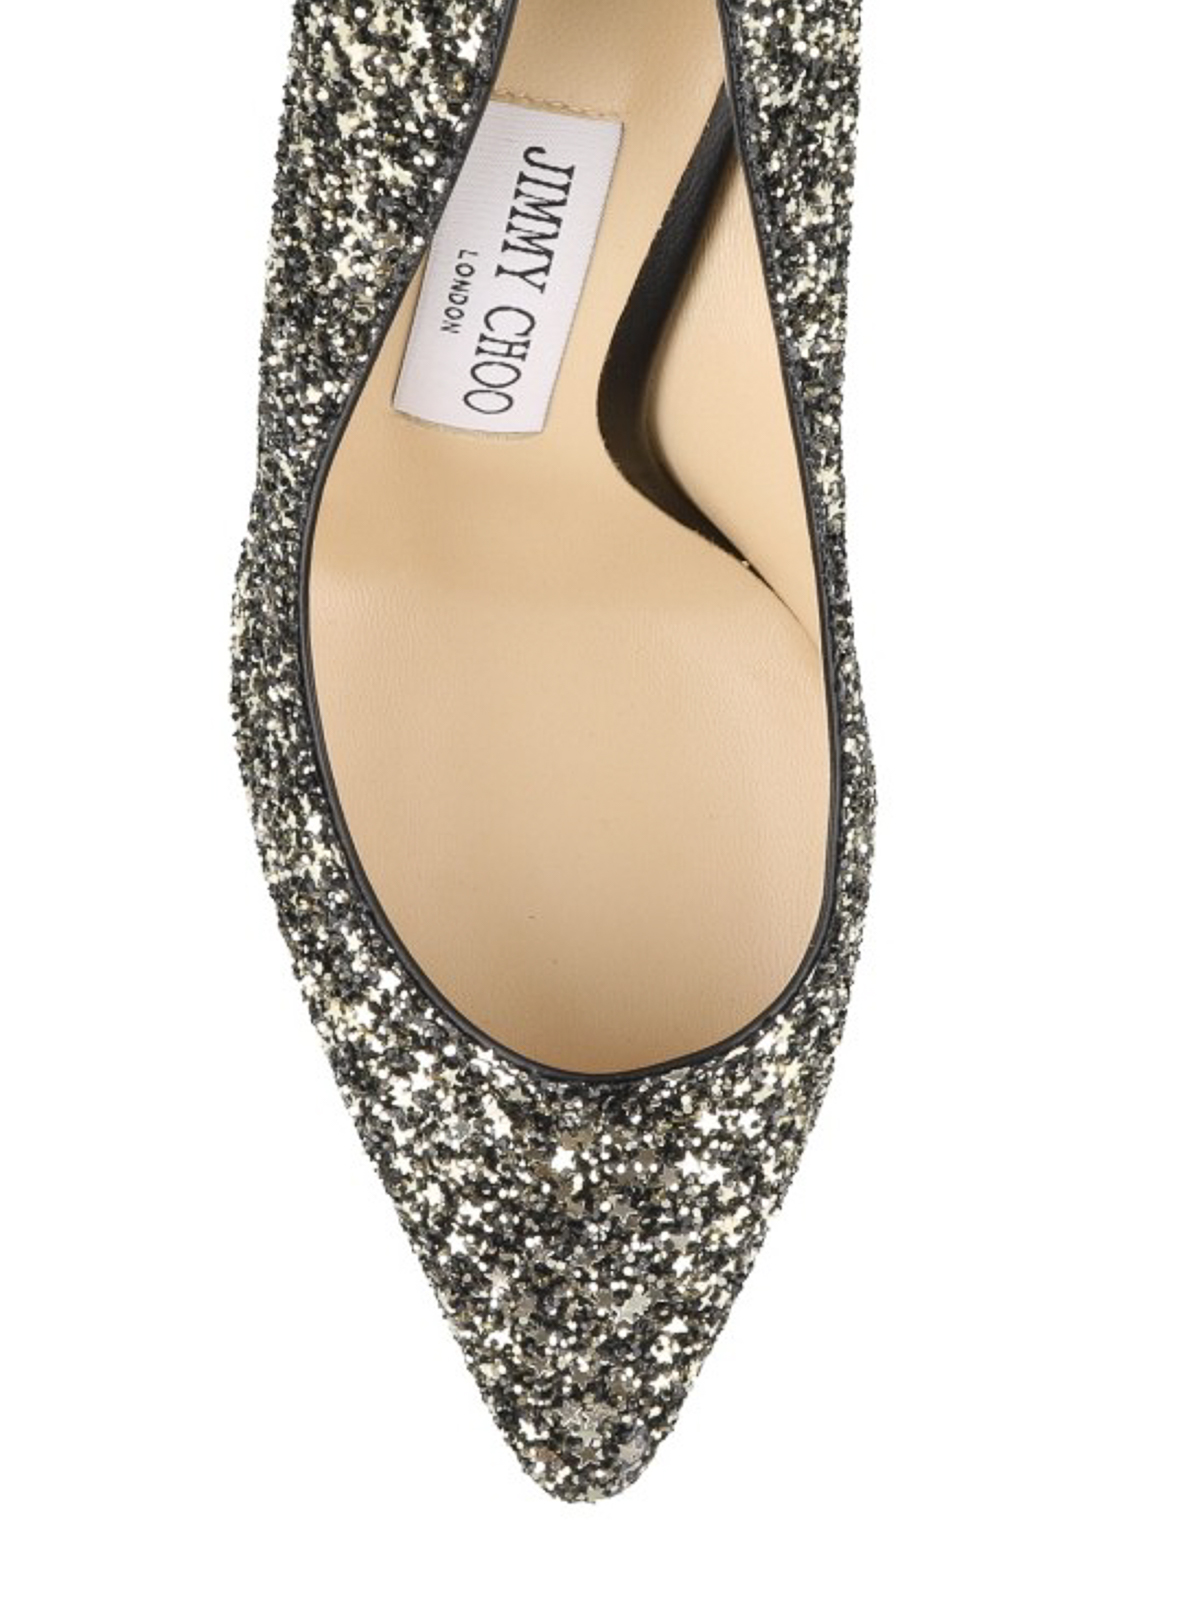 Romy 100 gold and black glitter pumps